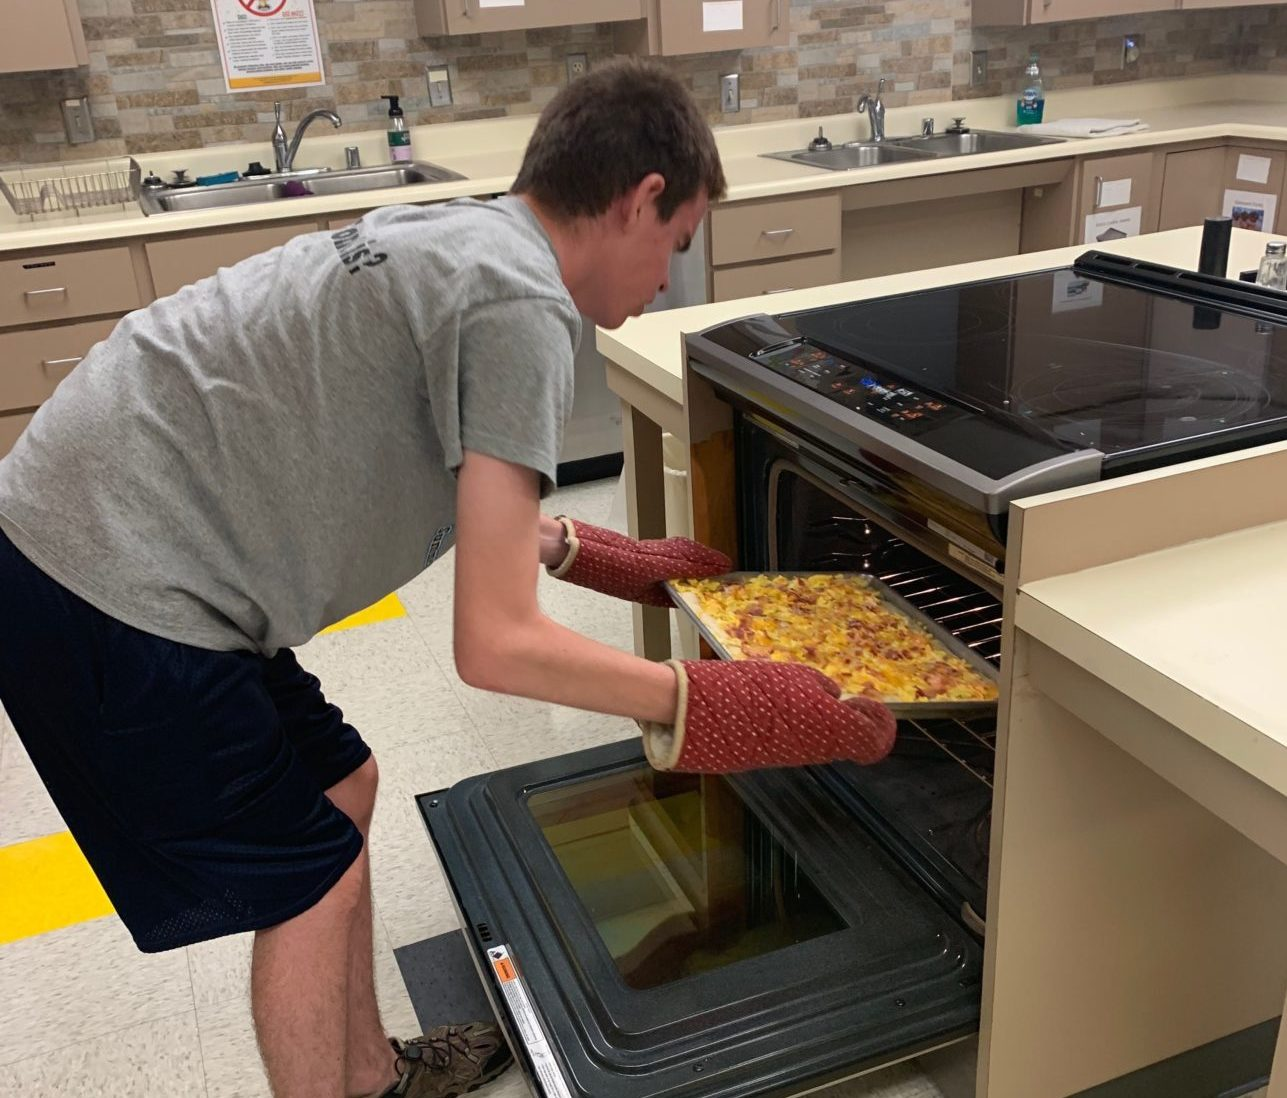 Student putting tray in the oven.